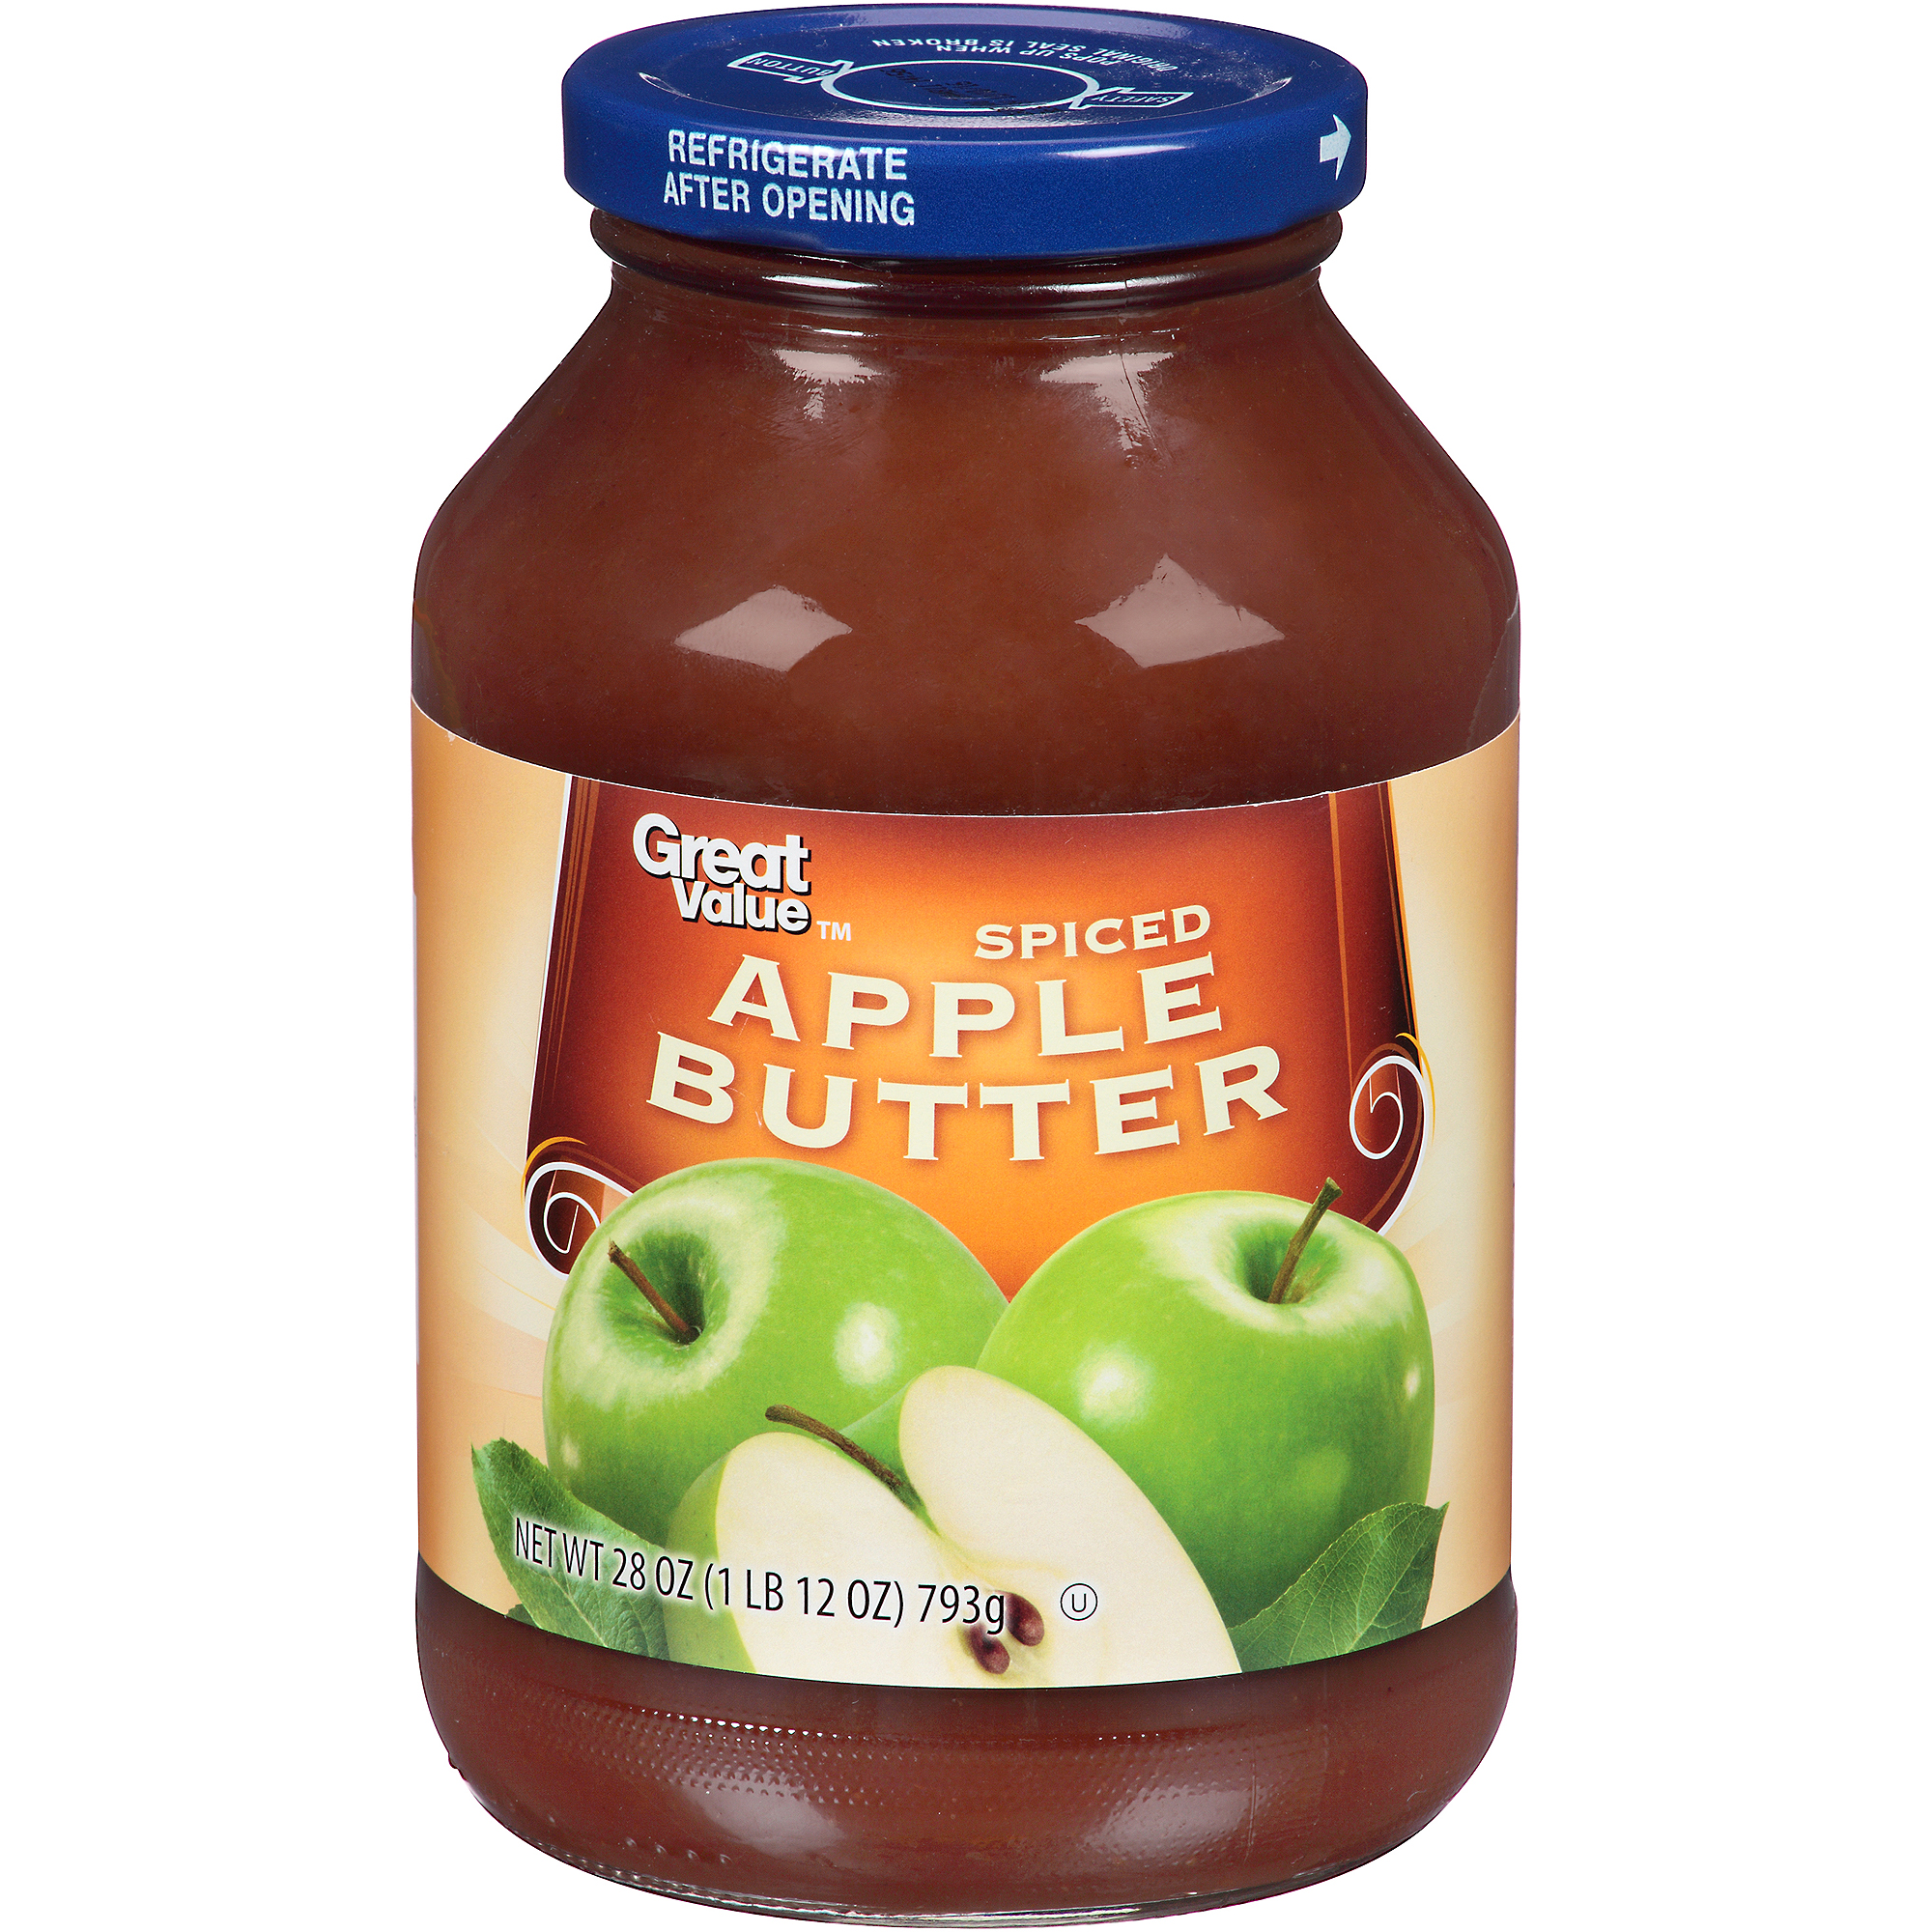 Great Value Spiced Apple Butter, 28 oz